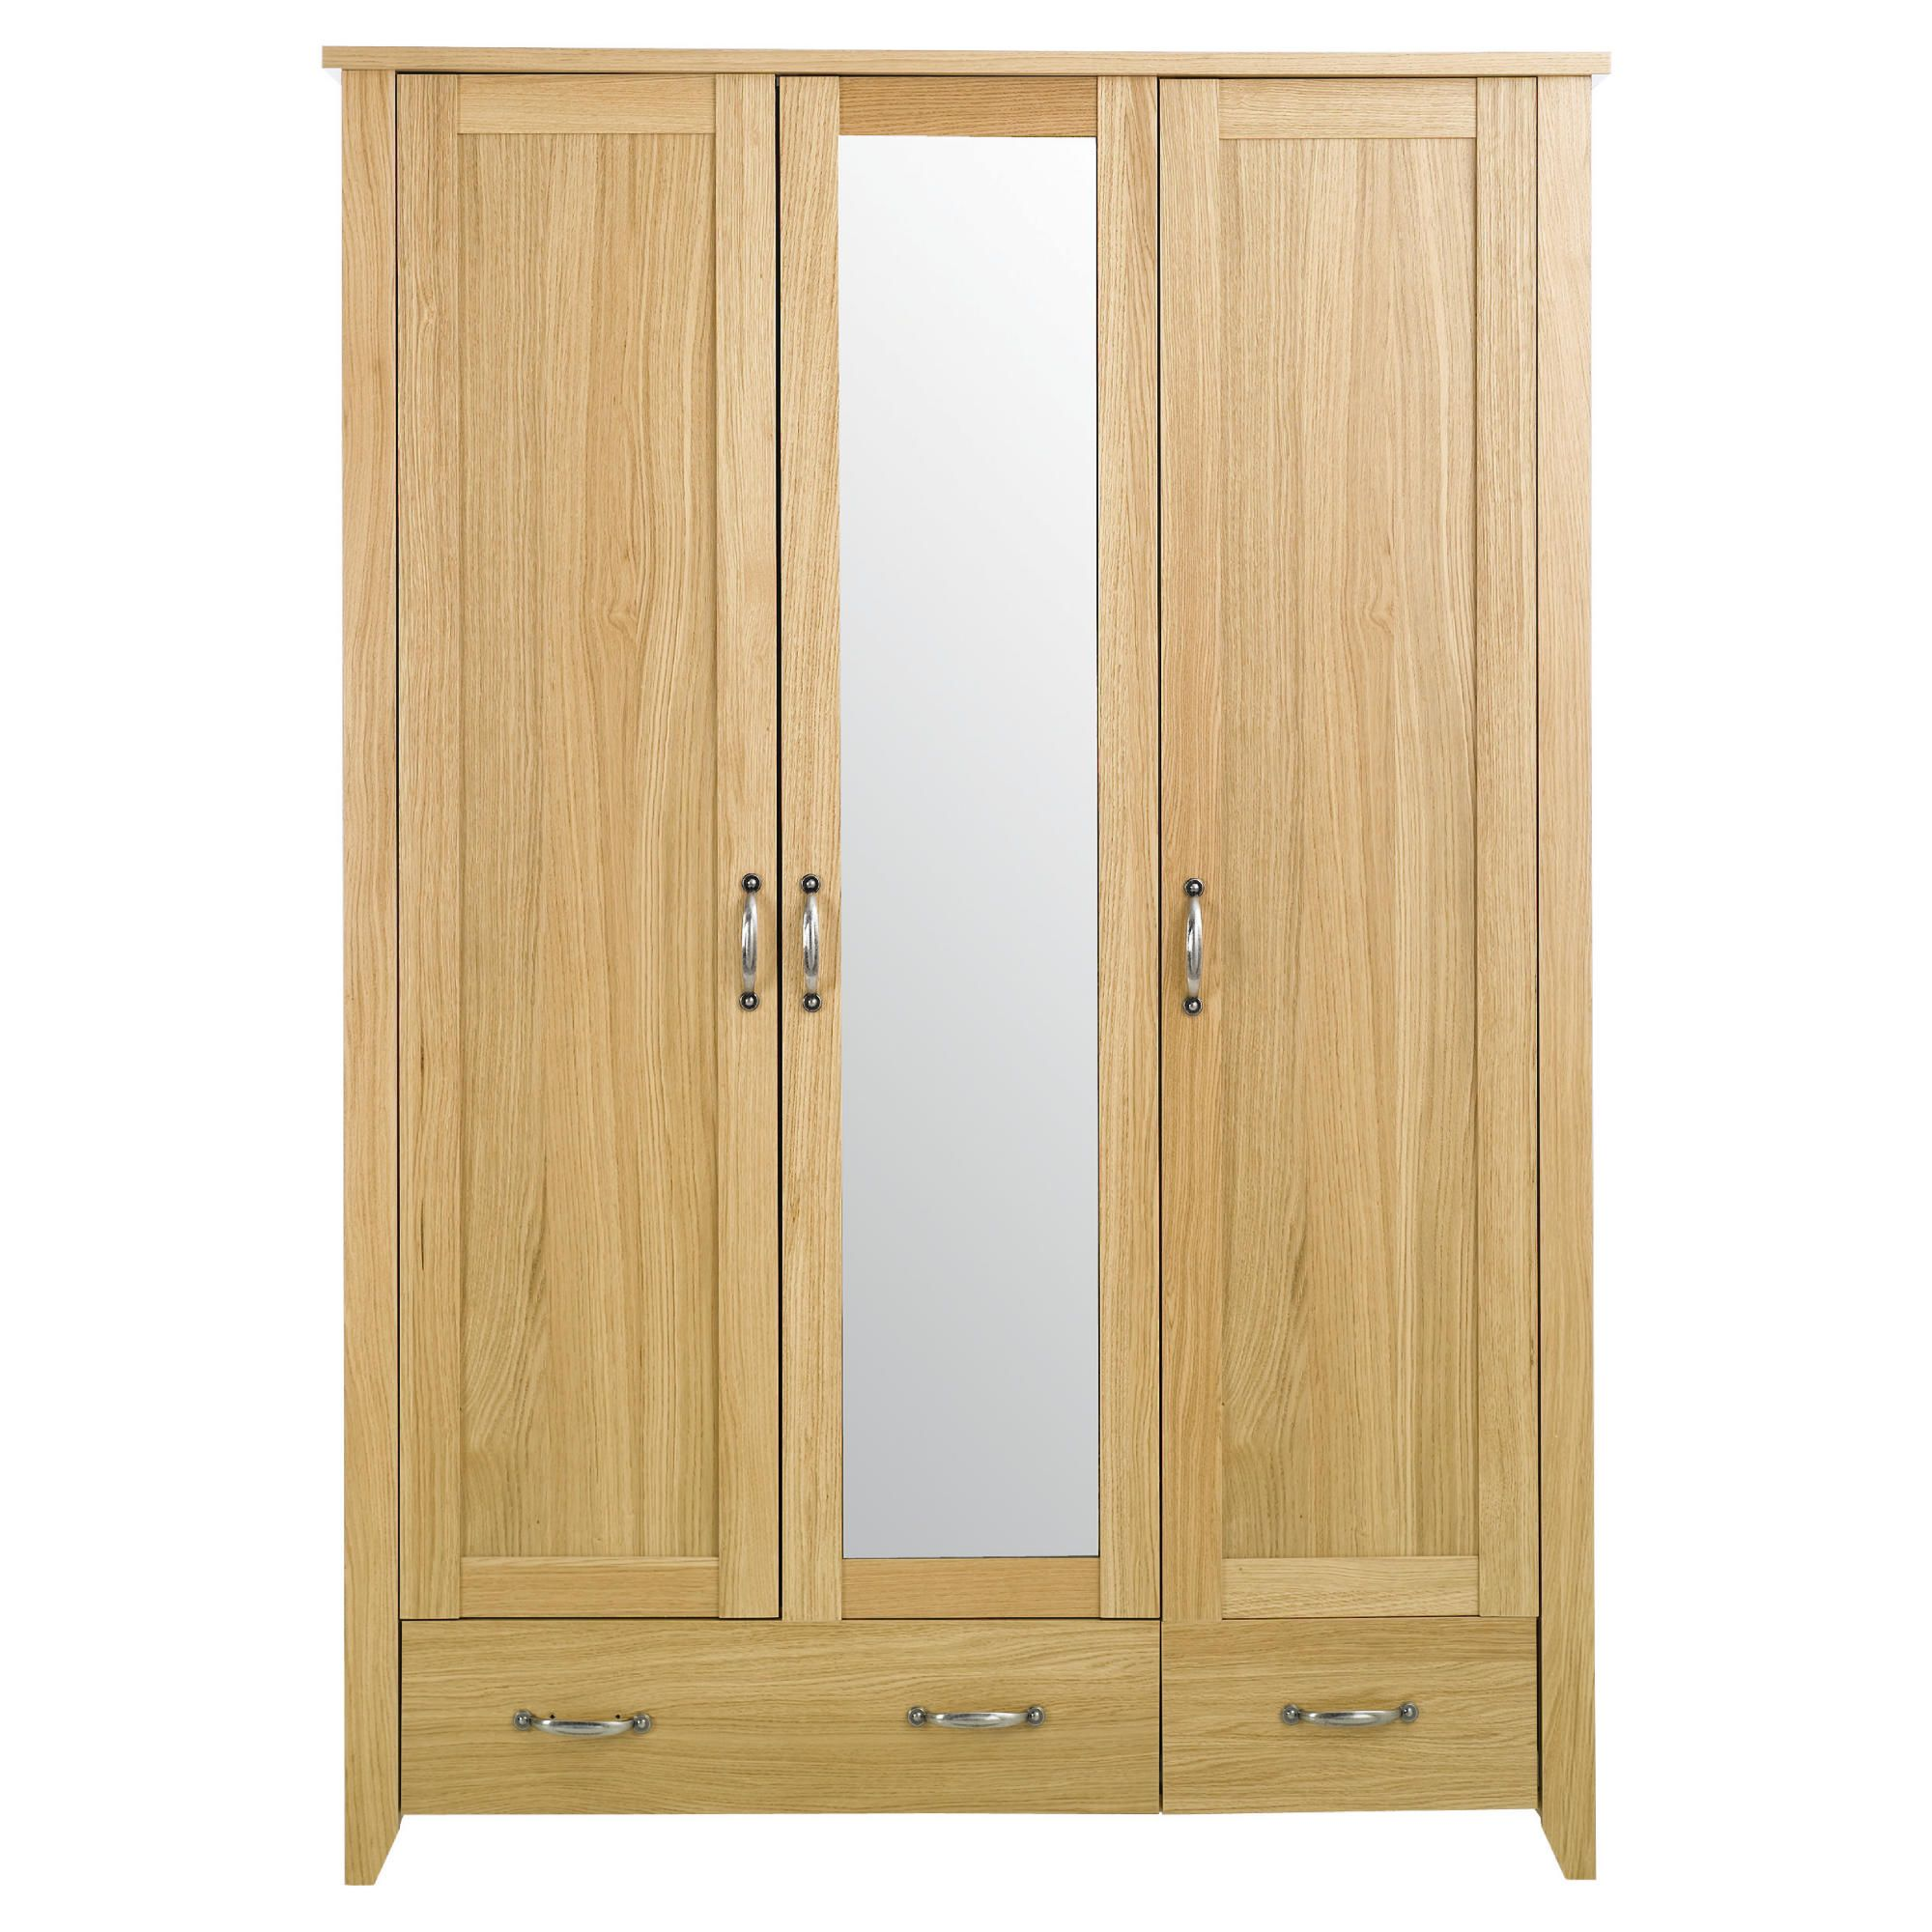 Harrogate Triple Wardrobe, Oak Veneer at Tescos Direct